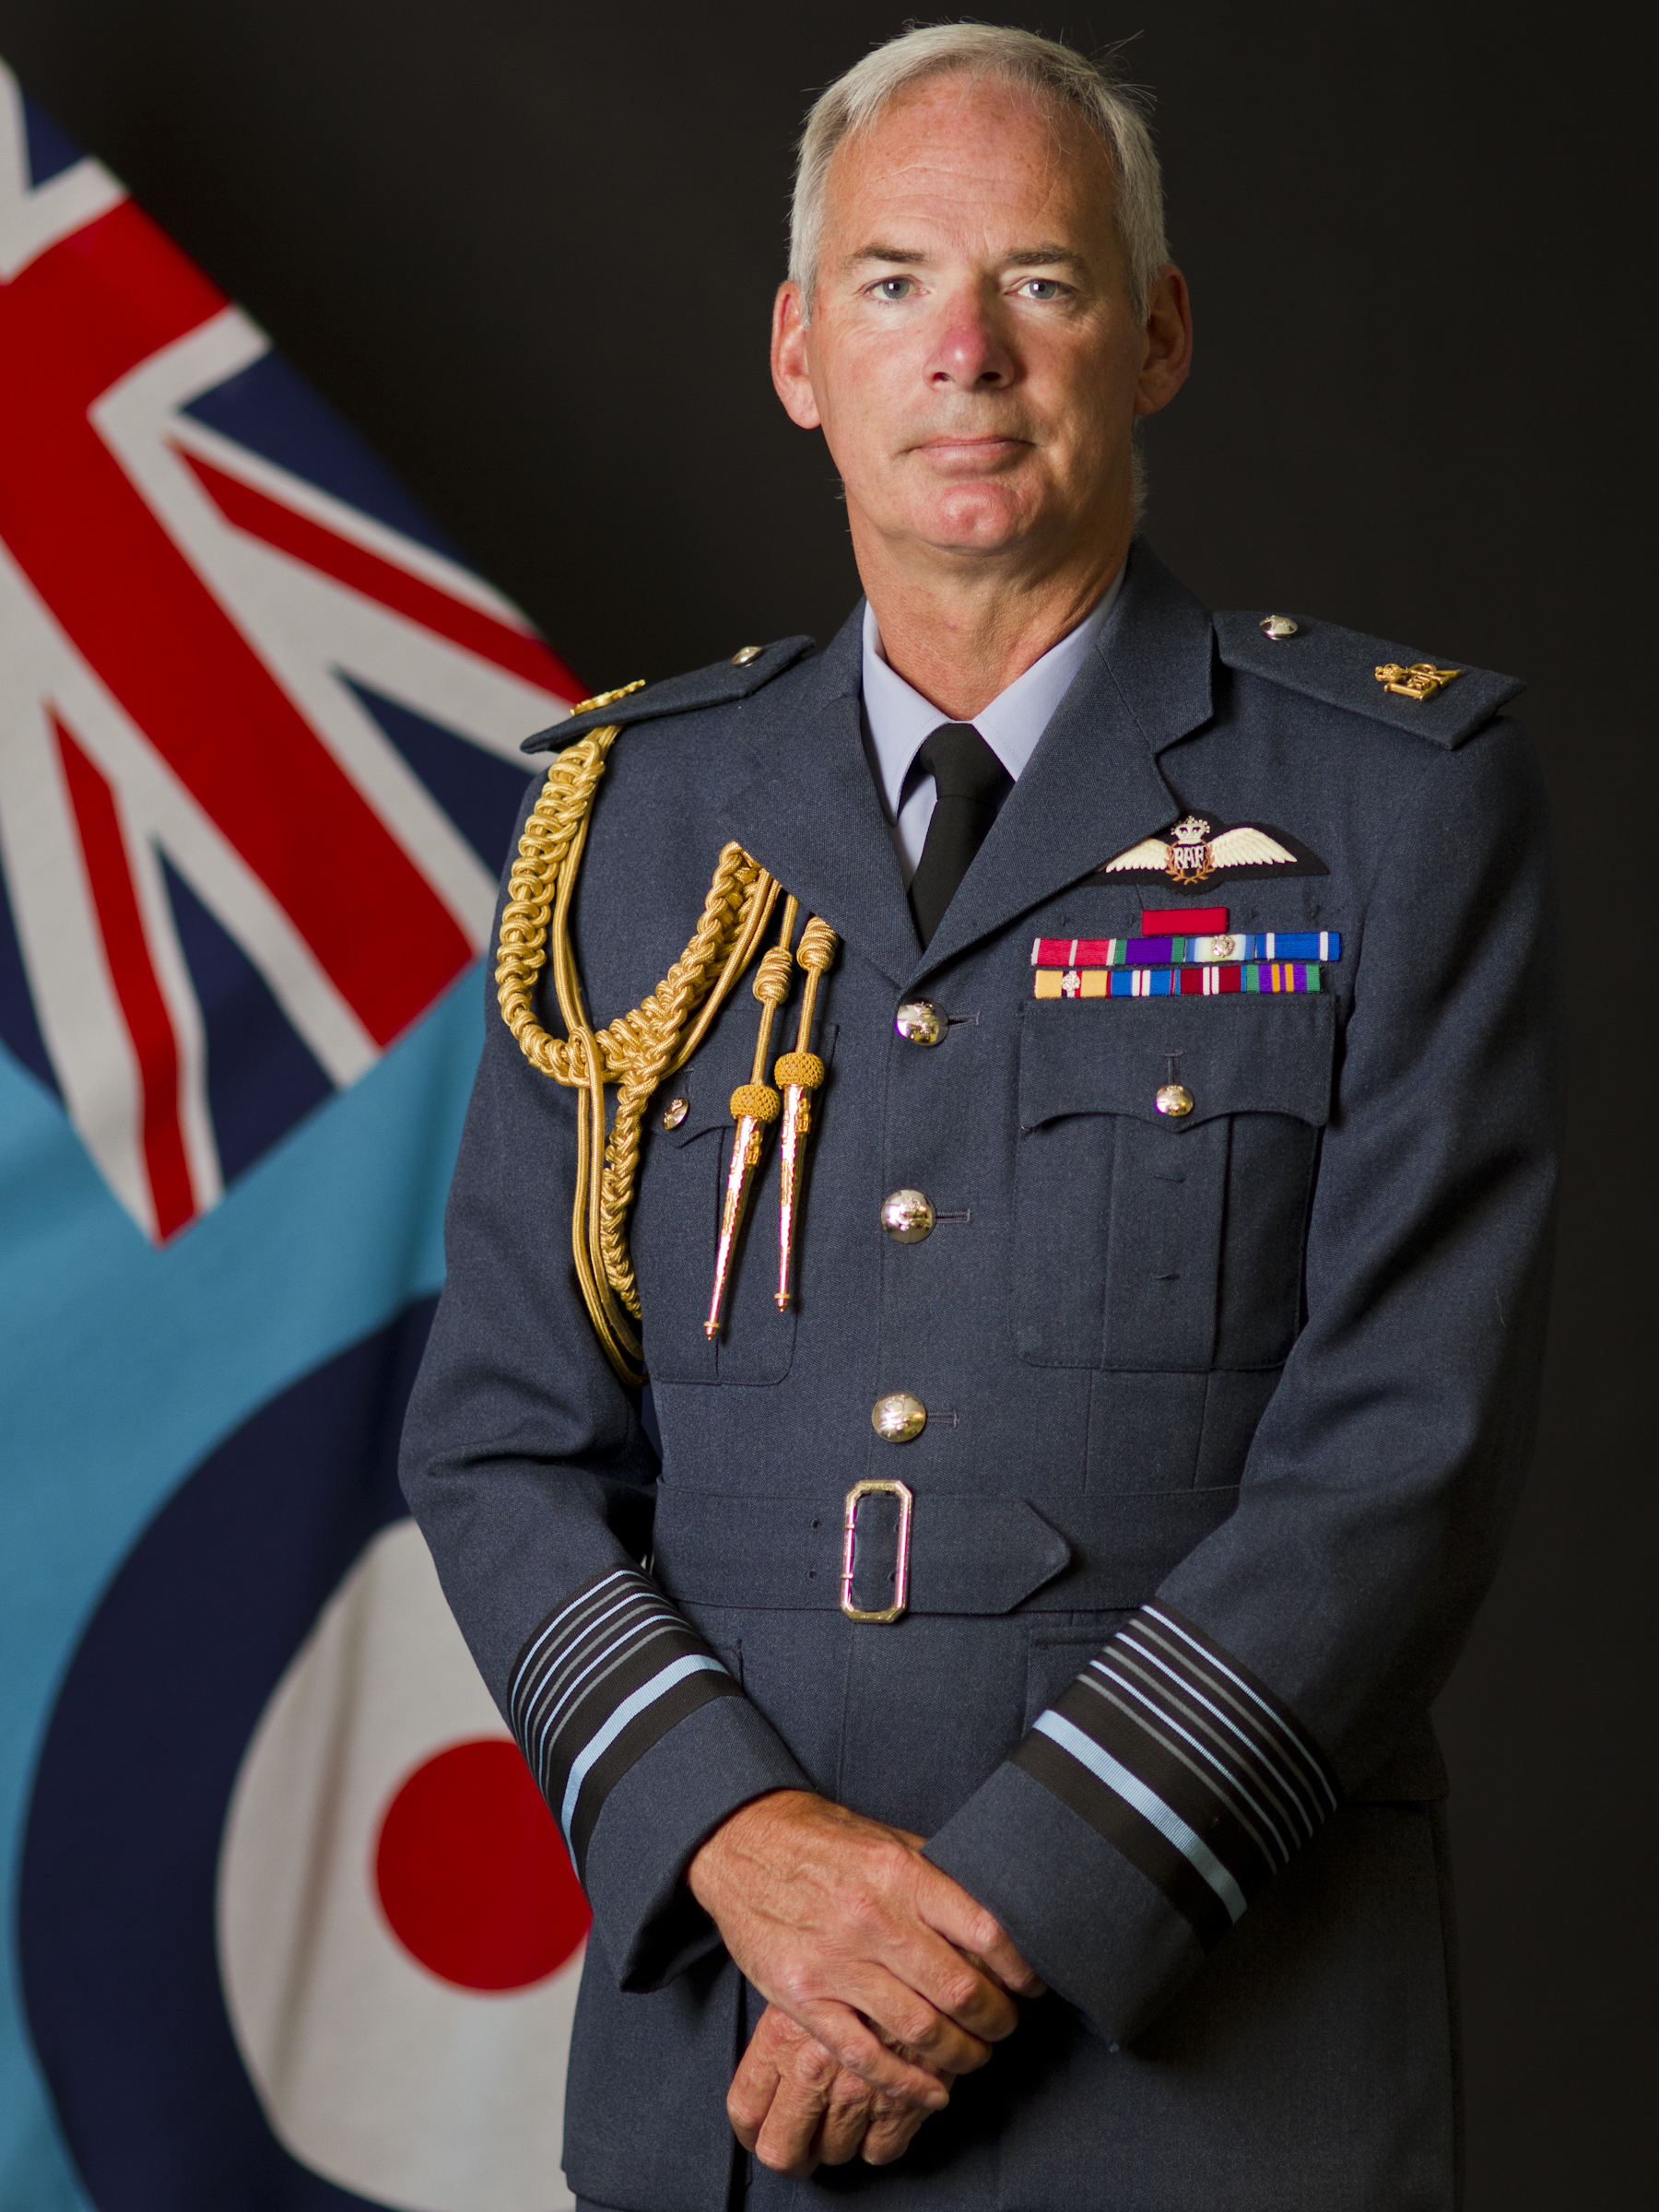 helicopter pilot training uk with File Chief Of The Air Staff  Air Chief Marshal Sir Andrew Pulford Mod 45155744 on 4604399208 additionally Twitter Wel es Home Hero Prince Harry But Critics Divided Over Killing Admission 3361359 likewise Majority Dont Trust Female Pilots furthermore Watch further Piper Pa 28 Warrior Aircraft Cockpit Poster P4219.